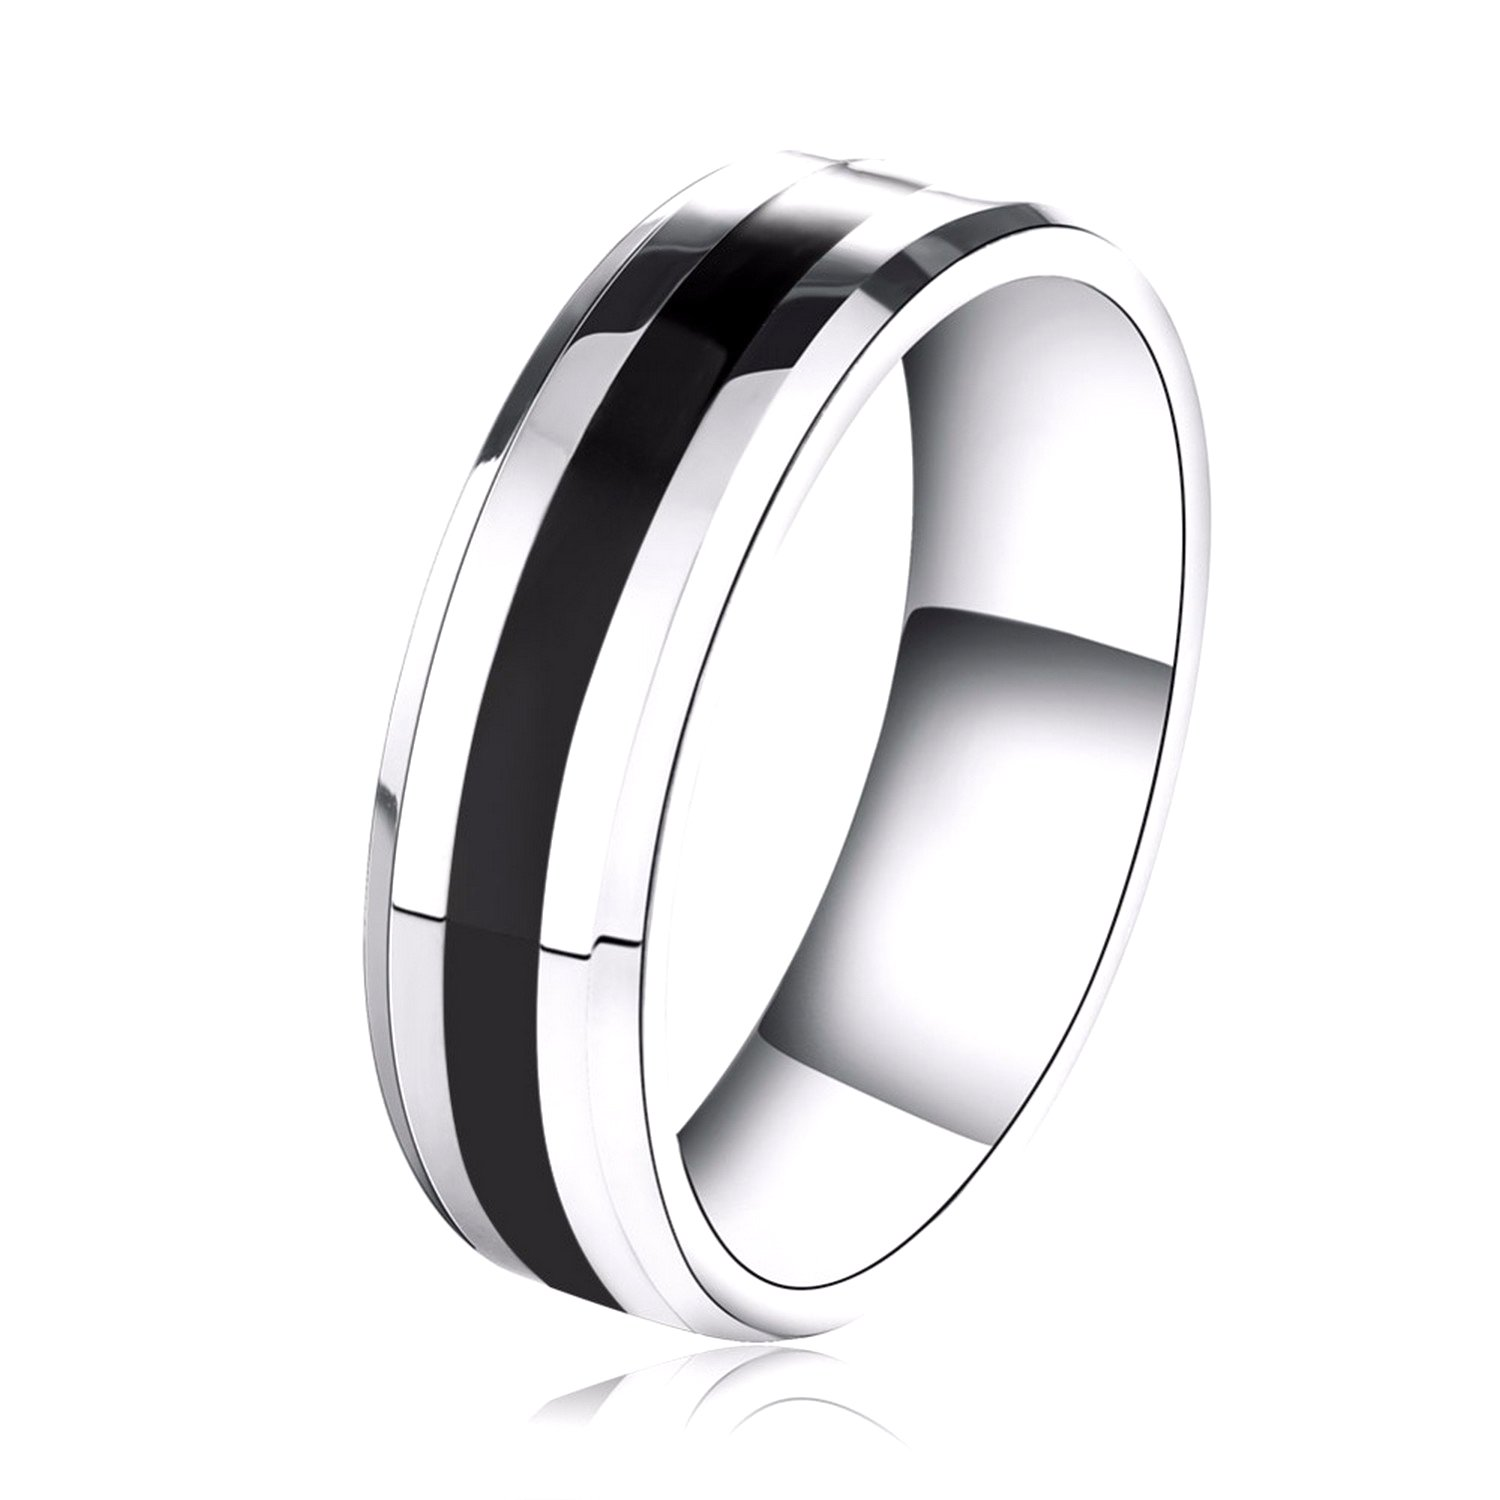 Dudee 316L Stainless Steel Couple Style Wedding womens engagement rings fashion rings for women